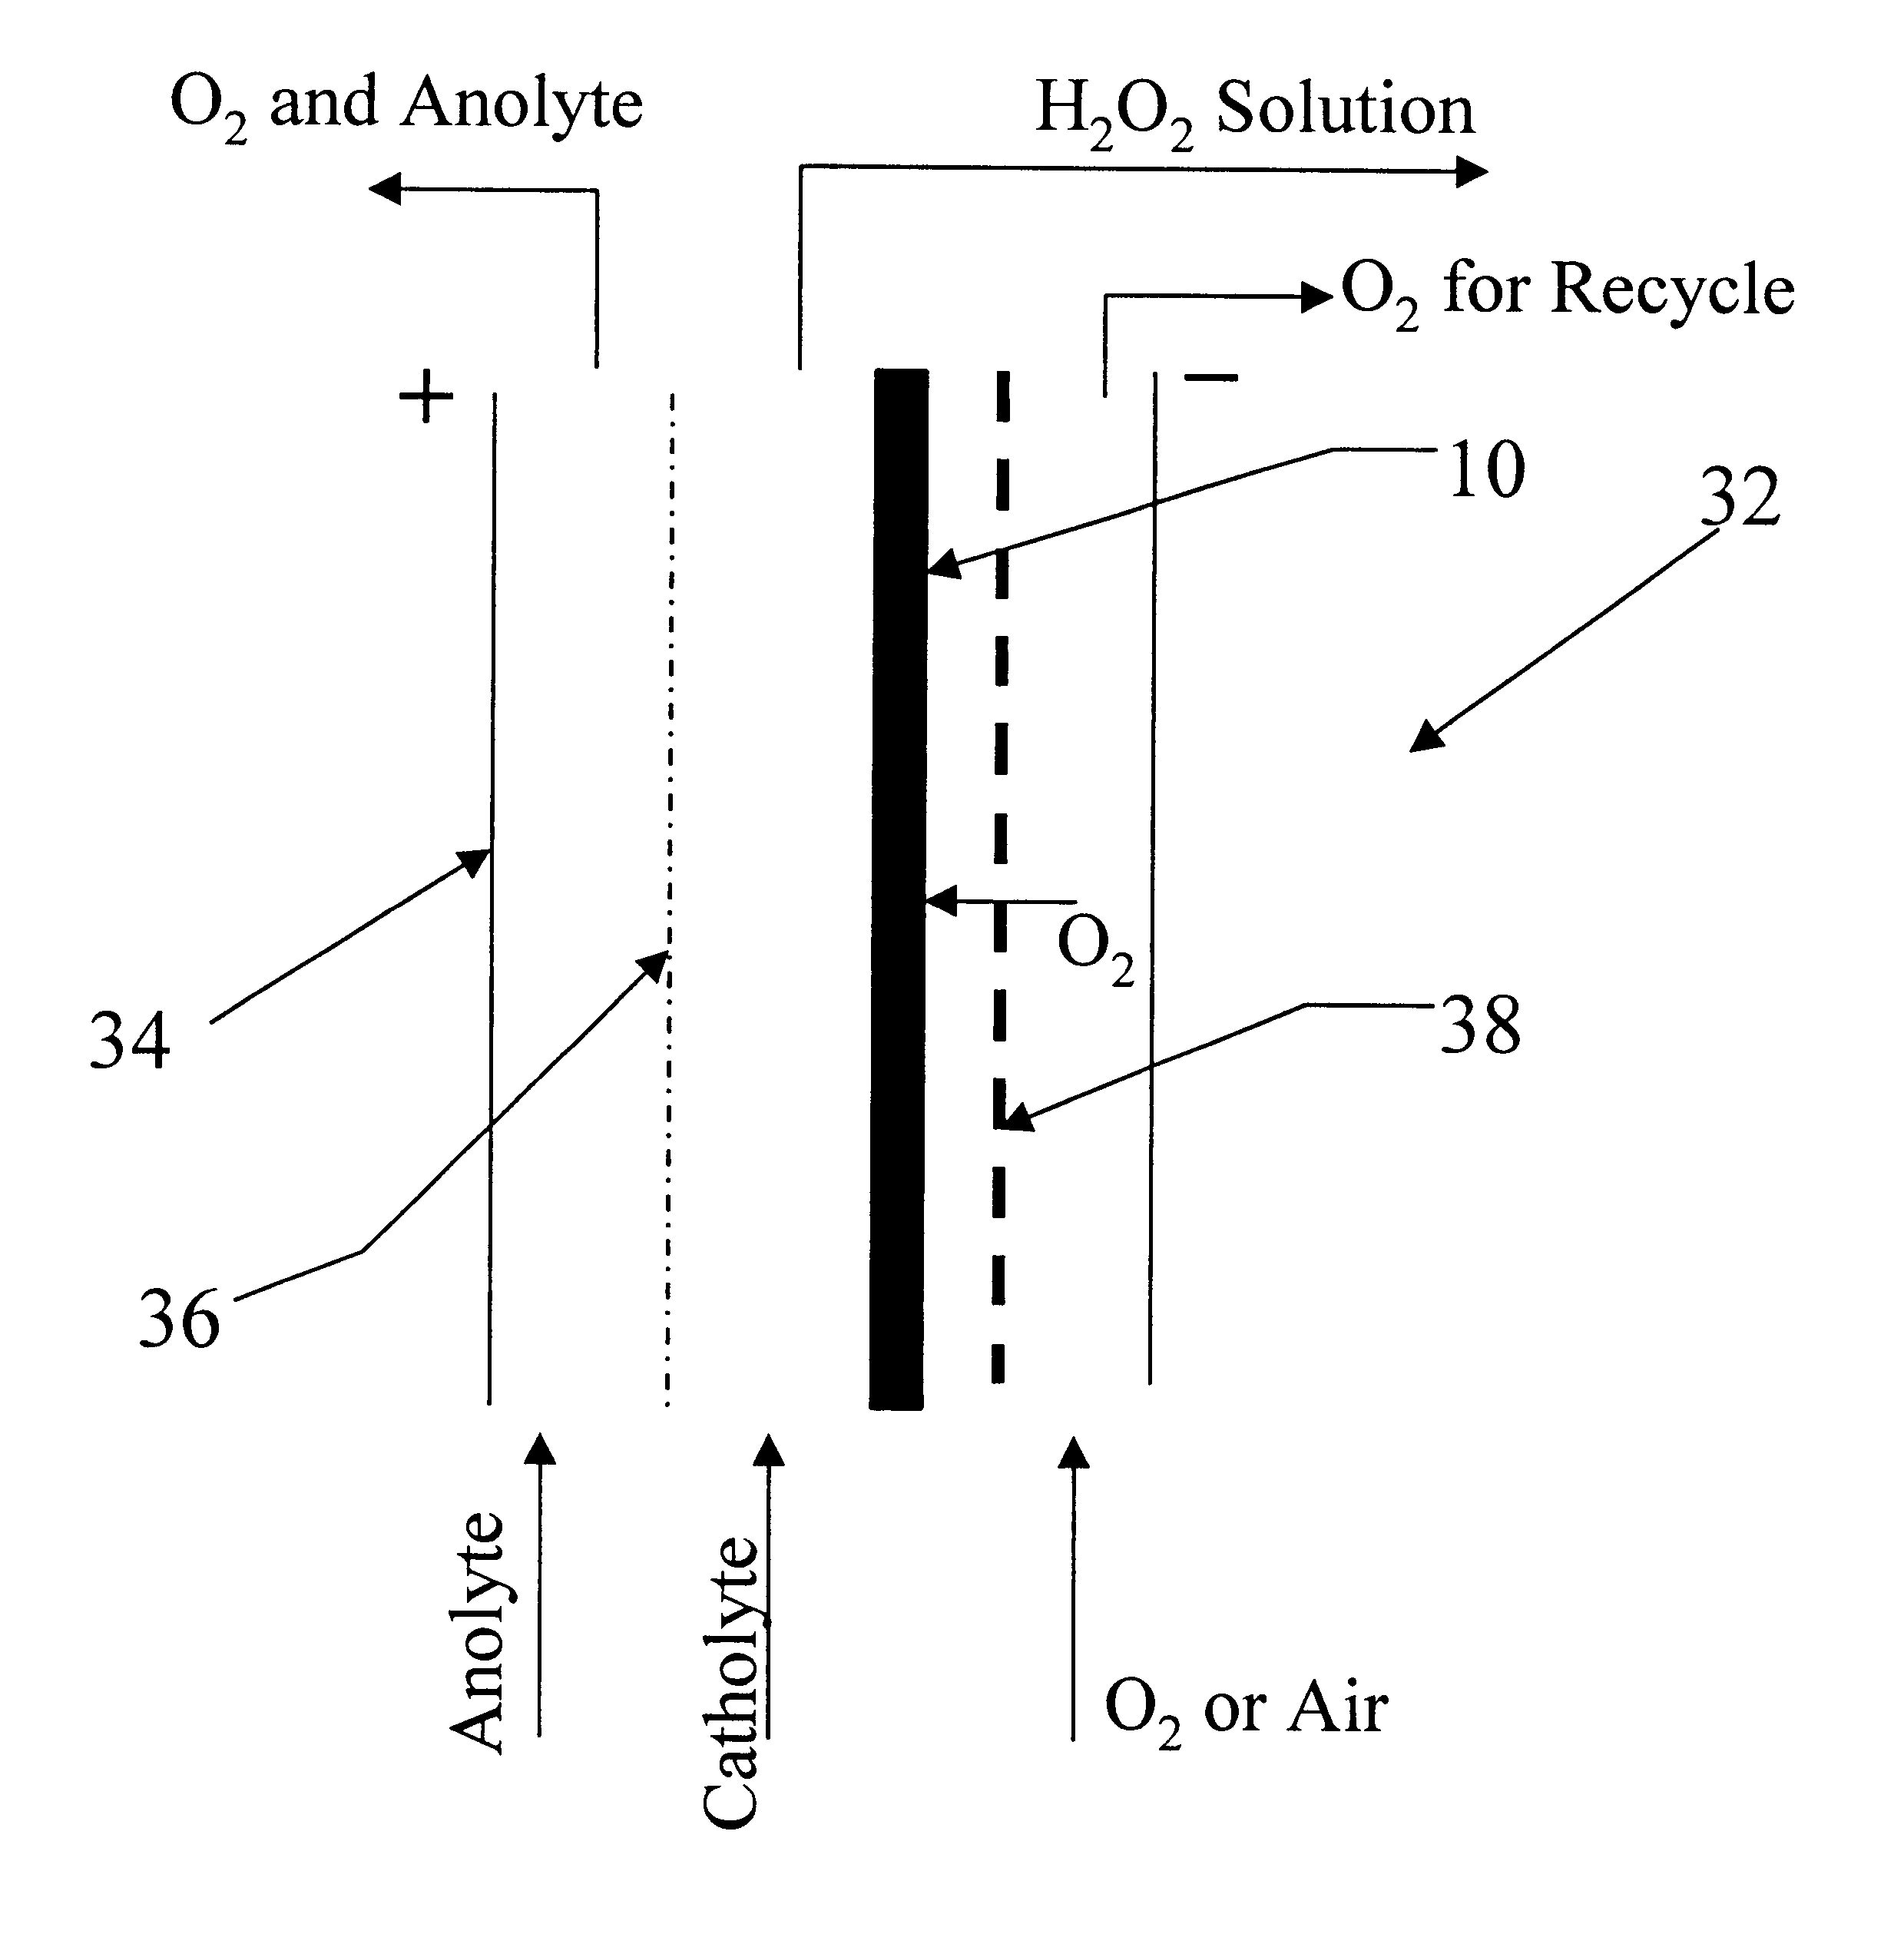 electrosynthesis for hydrogen peroxide January 1999 vol 4 no 1 72 ward road, lancaster, ny 14086 tel: 716-684-0513, info@electrosynthesiscom wwwelectrosynthesiscom electrogenerated hydrogen peroxide.